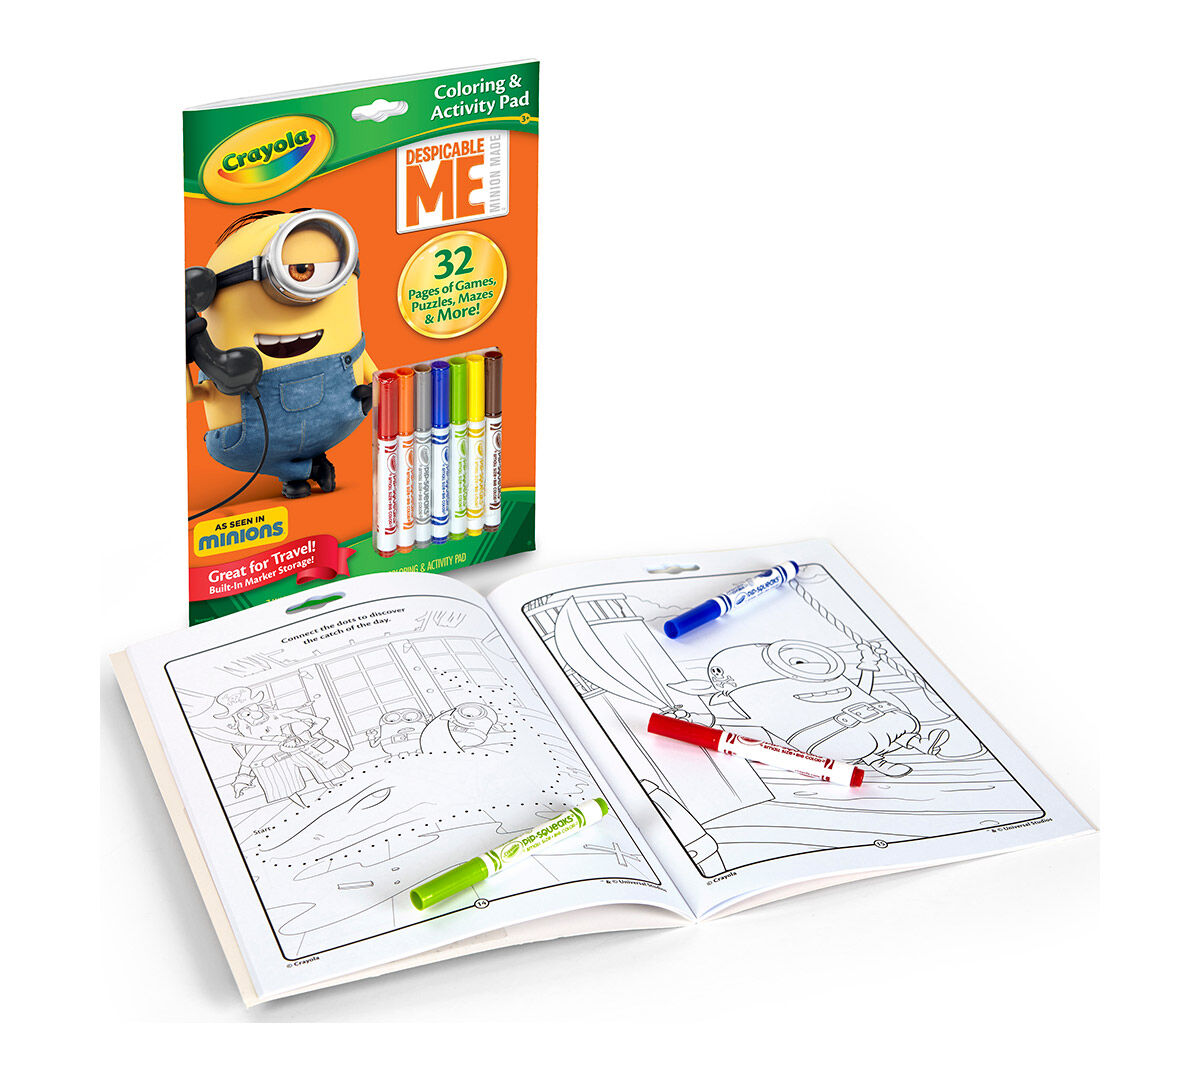 Crayola Coloring & Activity Book, Despicable Me , featuring ...